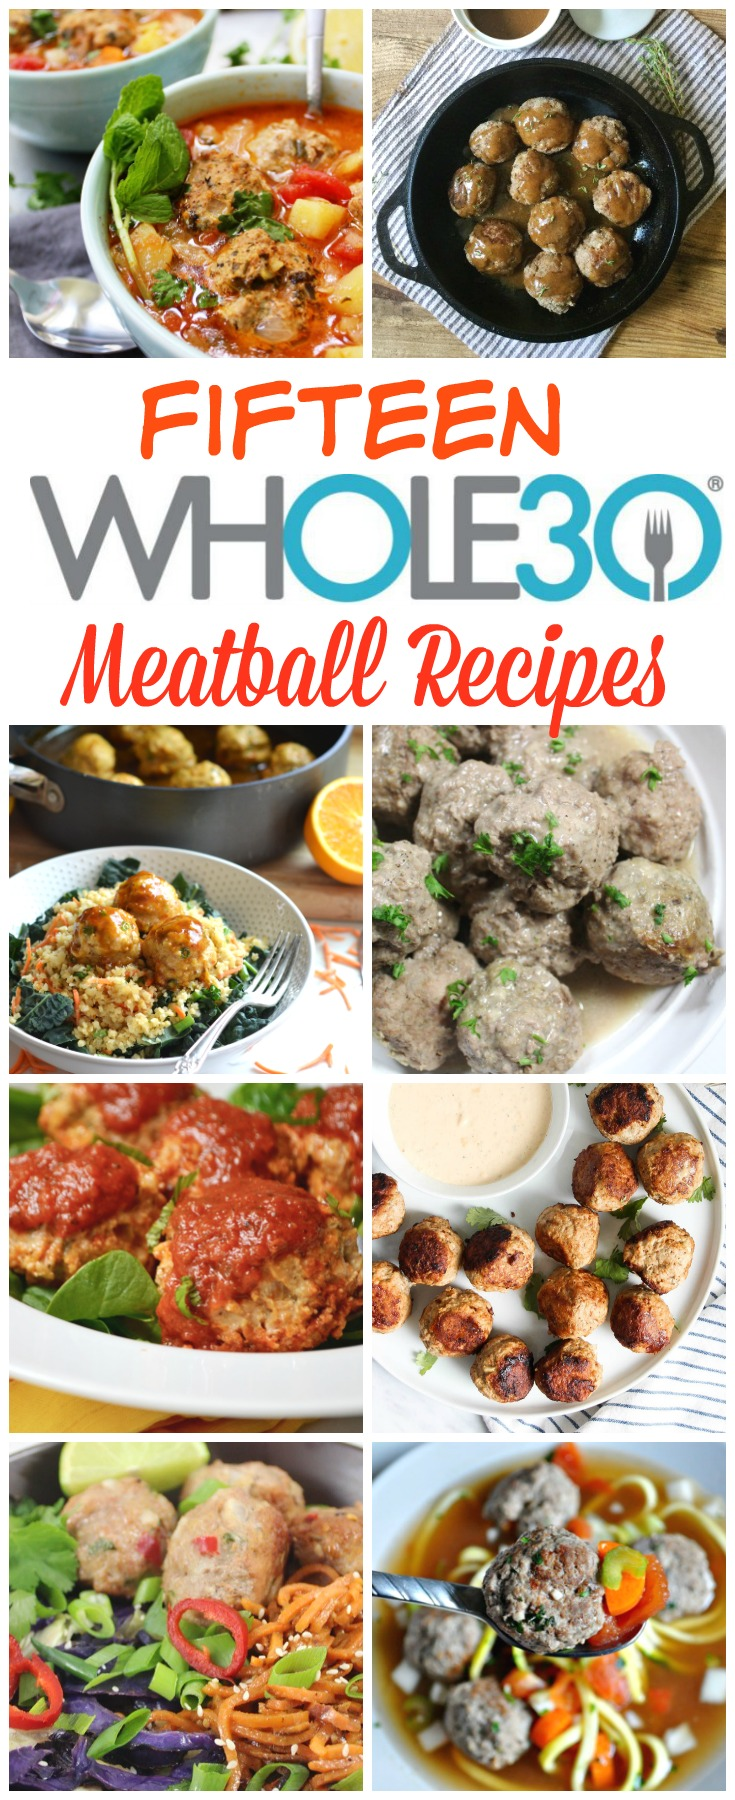 Paleo meatball recipes that are easy to make. These healthy meatball recipes are all perfect for meal prep, family friendly and freezer friendly, and Whole30 compliant! #paleomeatballs #paleodinner #paleobeefrecipes